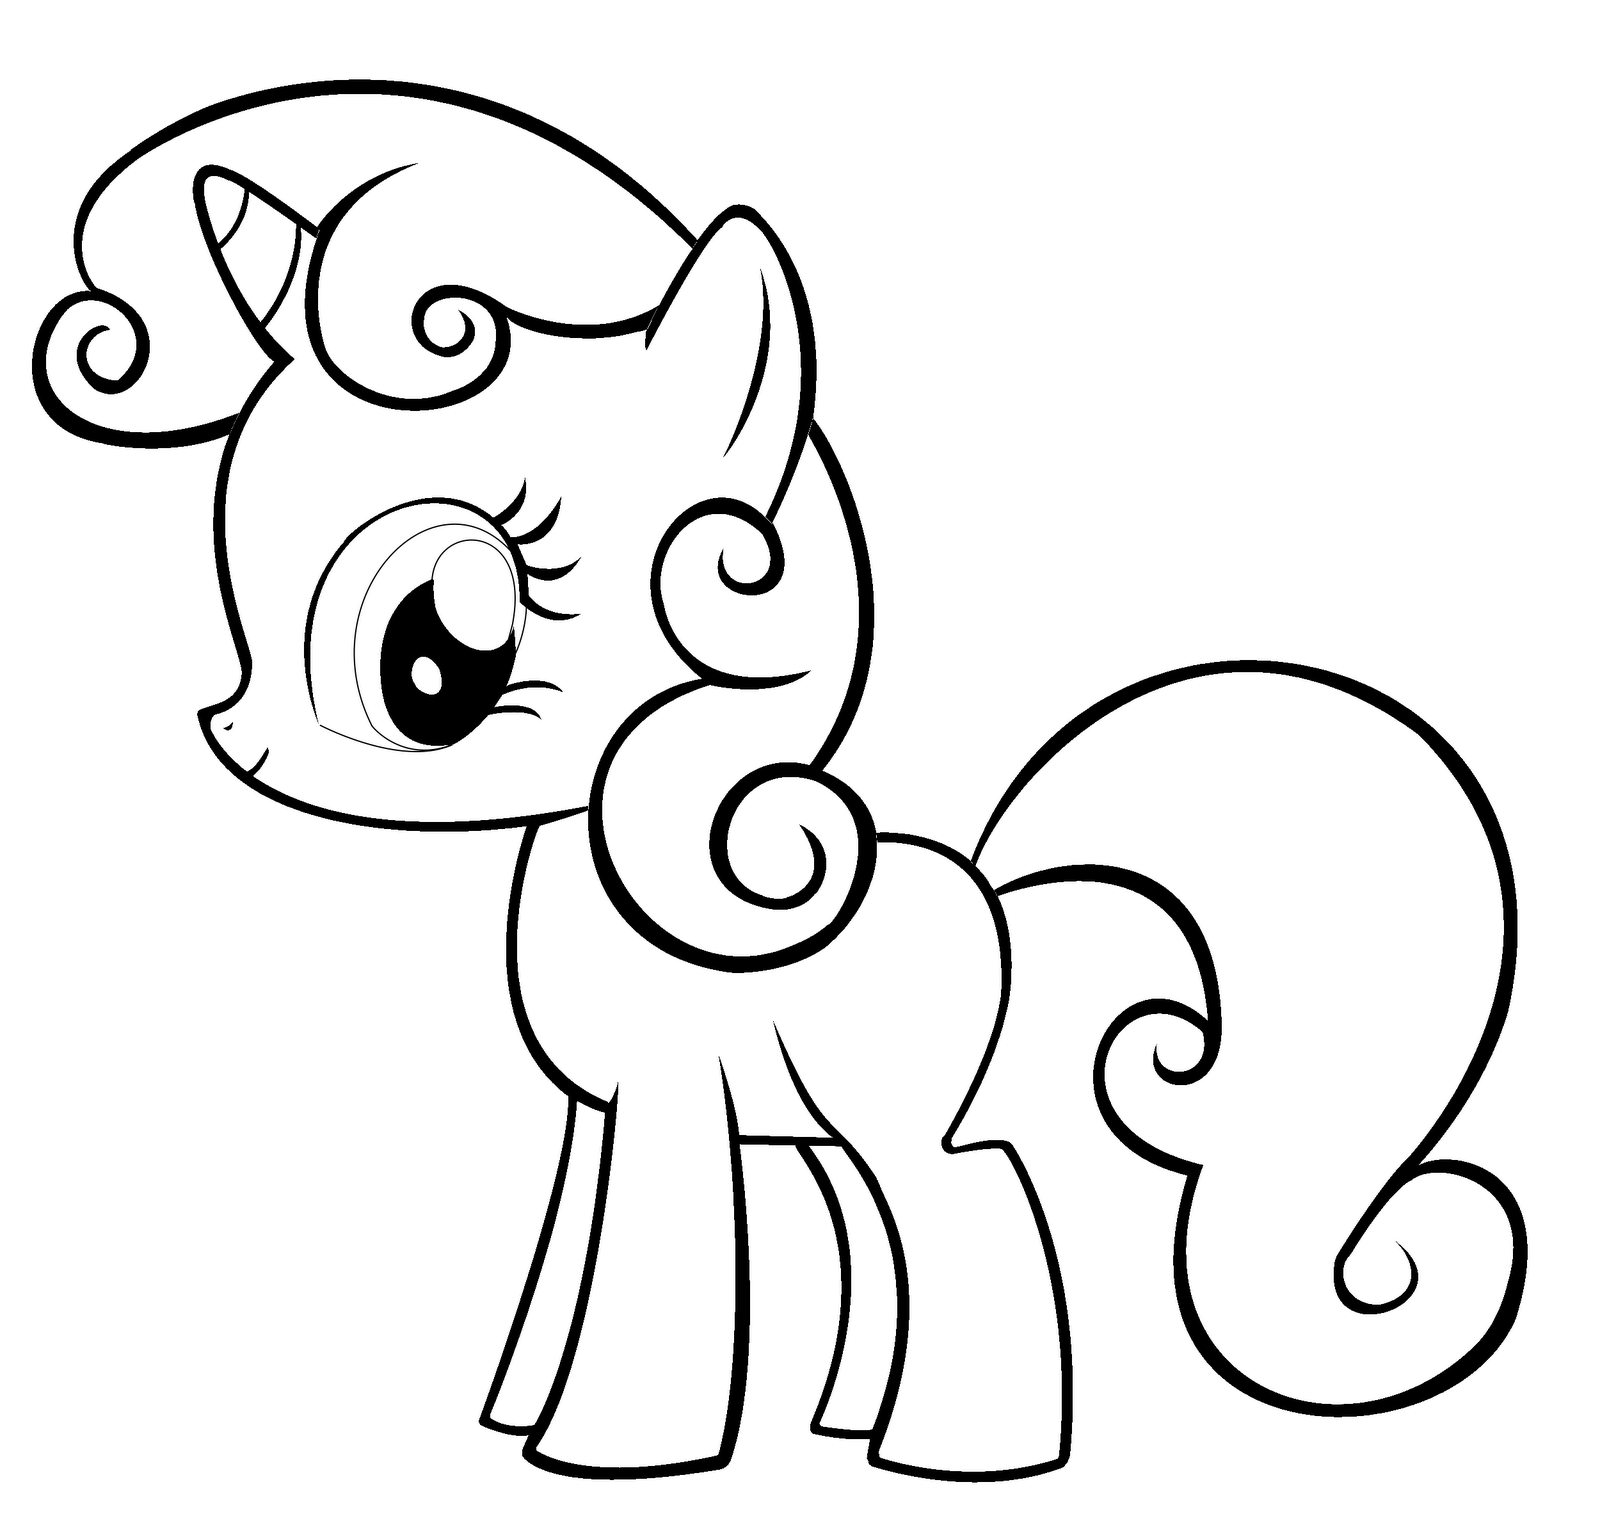 My Little Pony Names Coloring Pages : Free printable my little pony coloring pages for kids